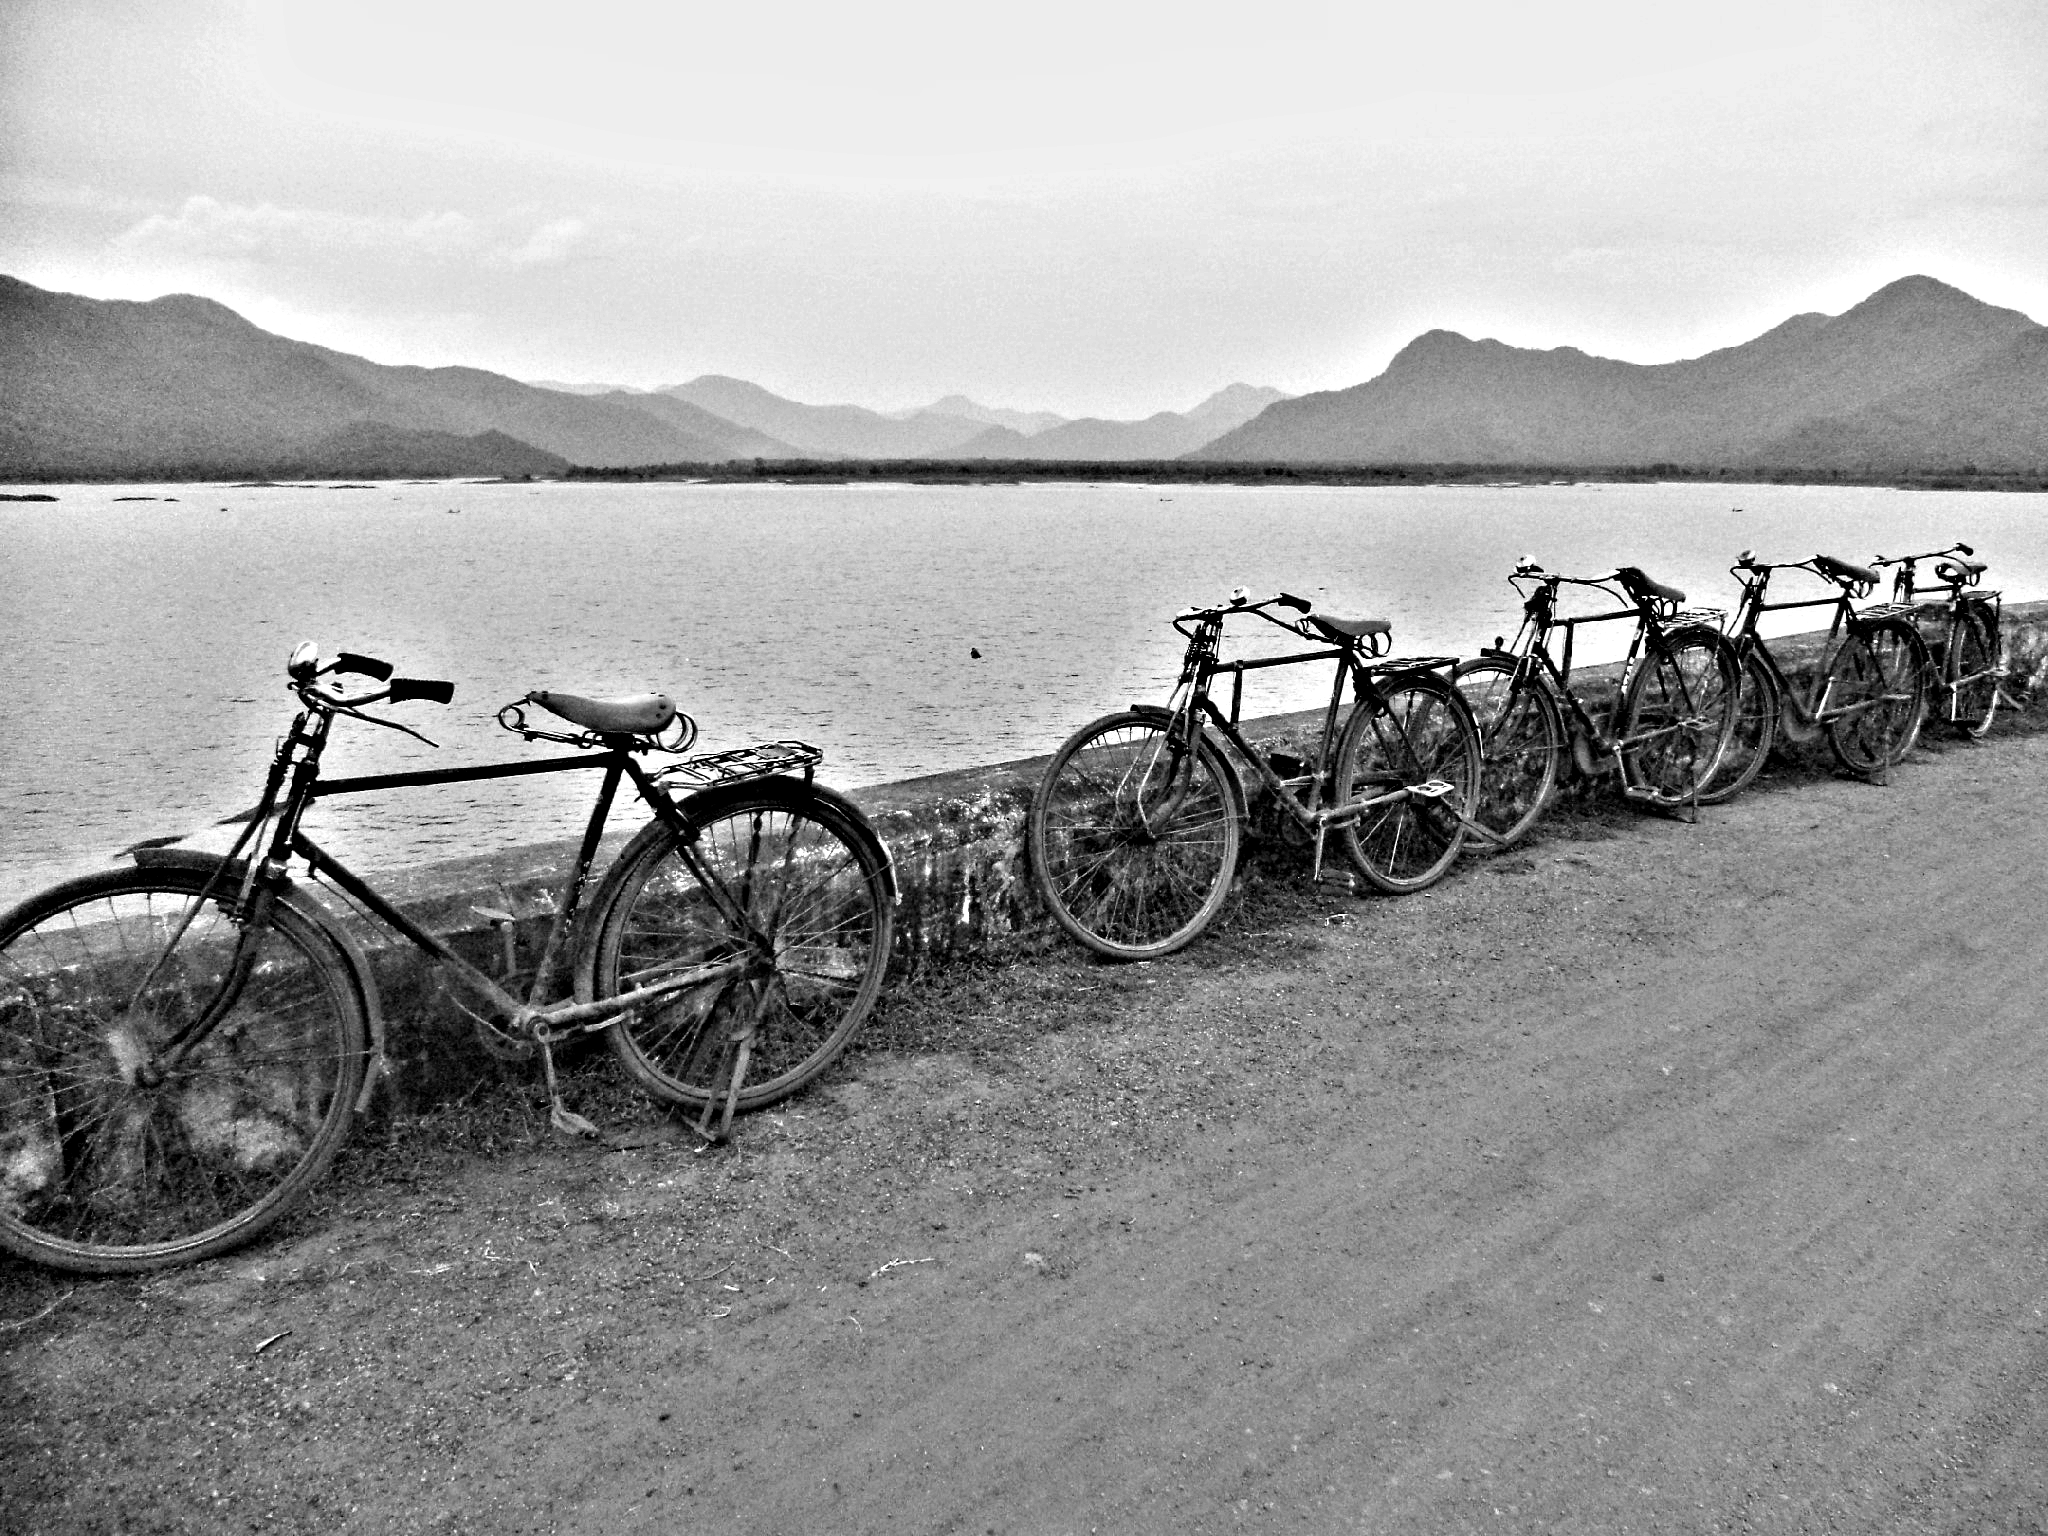 Cycles lined up beside a reservoir